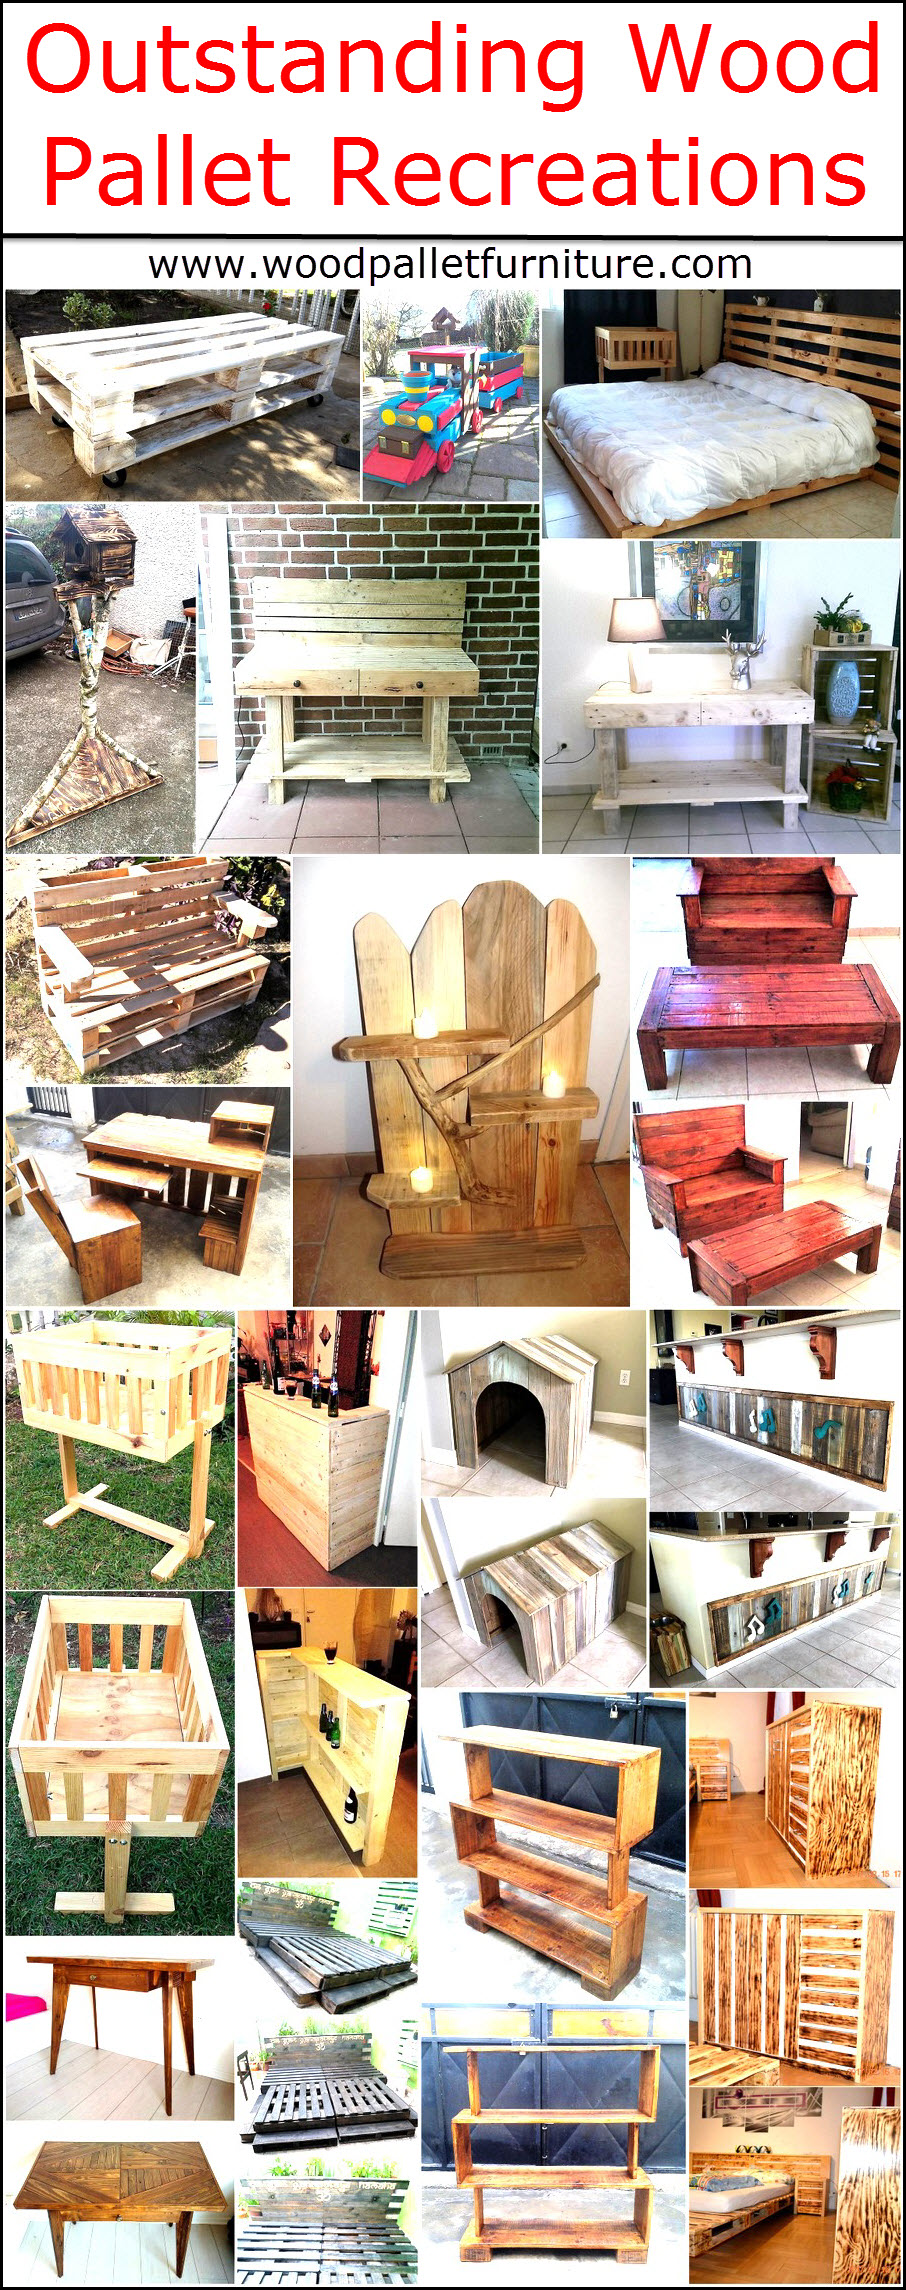 Outstanding Wood Pallet Recreations